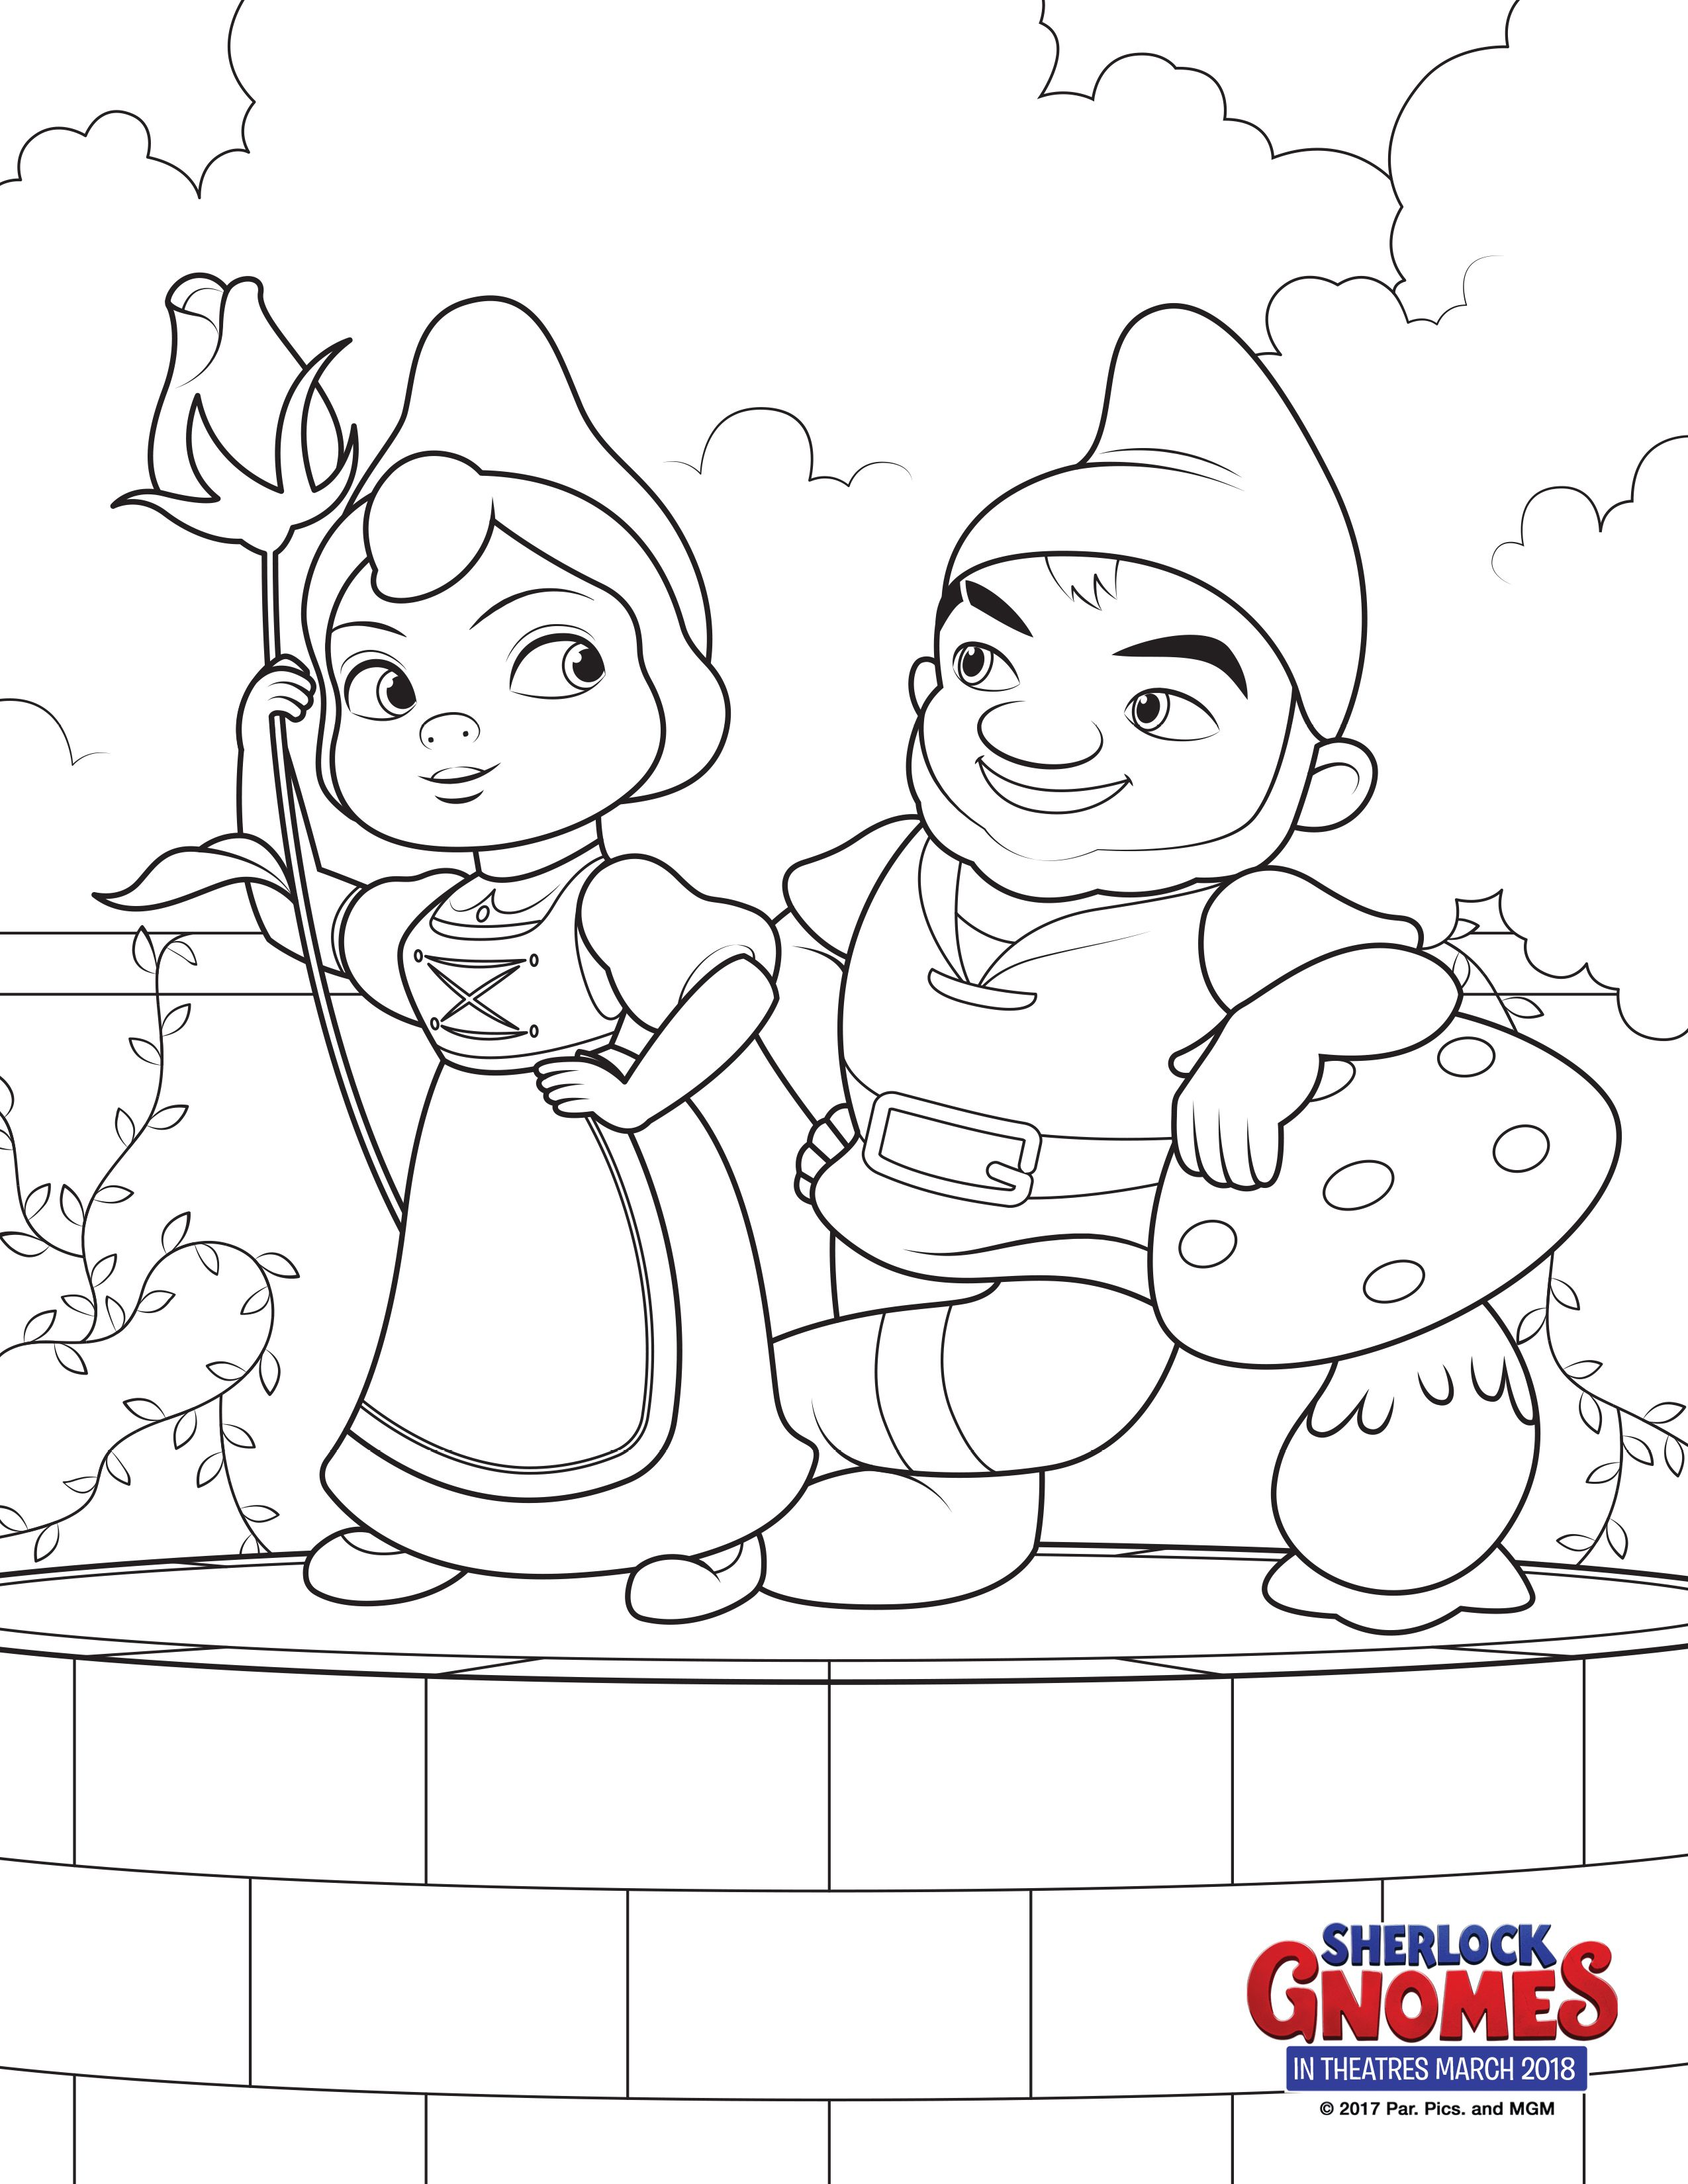 Sherlock Gnomes Coloring Pages Books